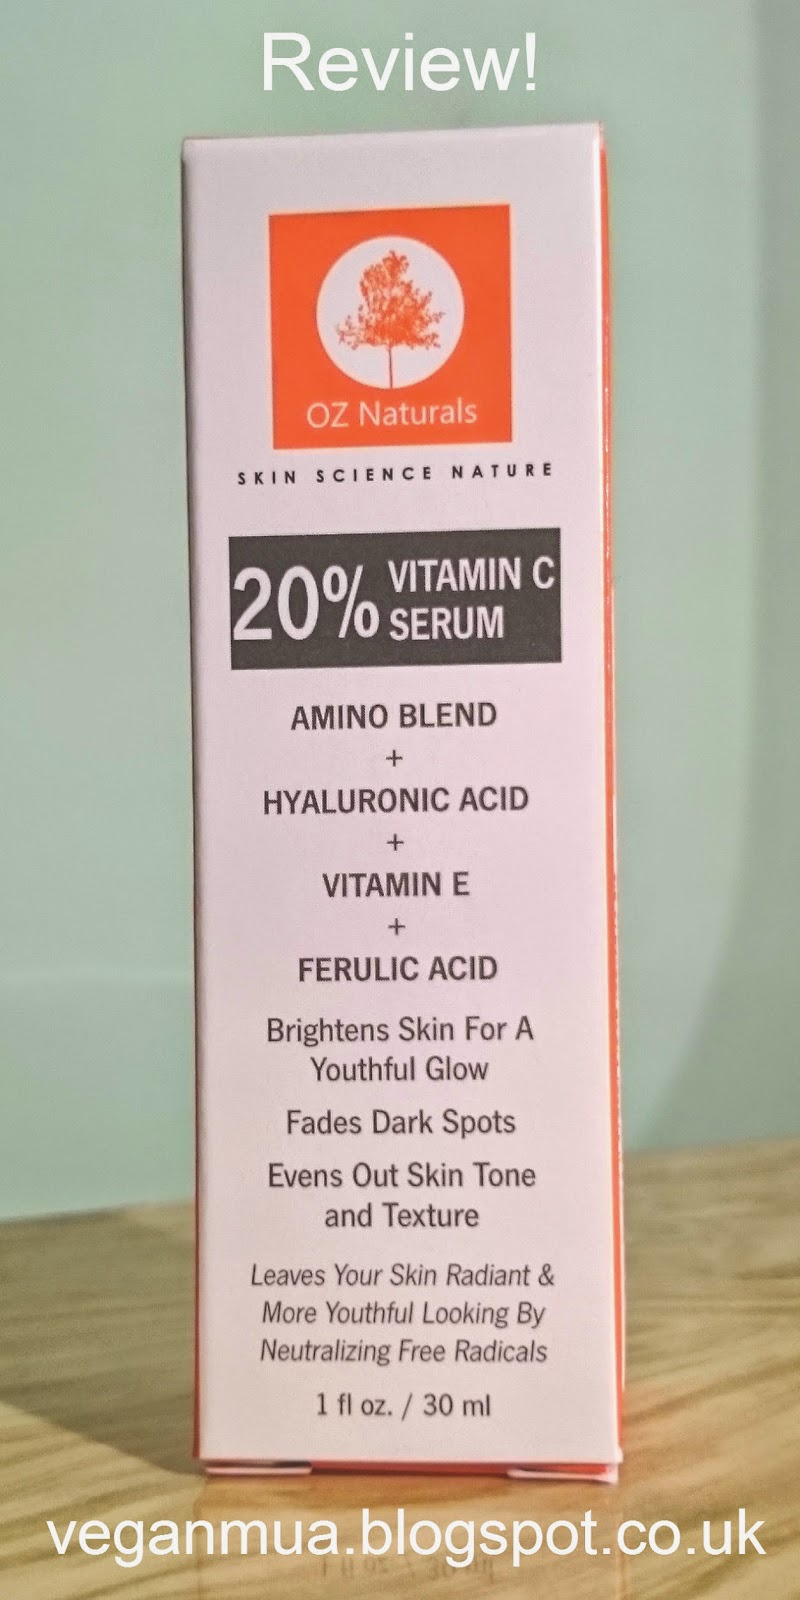 Review: Oz Naturals 20% Vitamin C & Amino & Hyaluronic Acid serum. Packaging